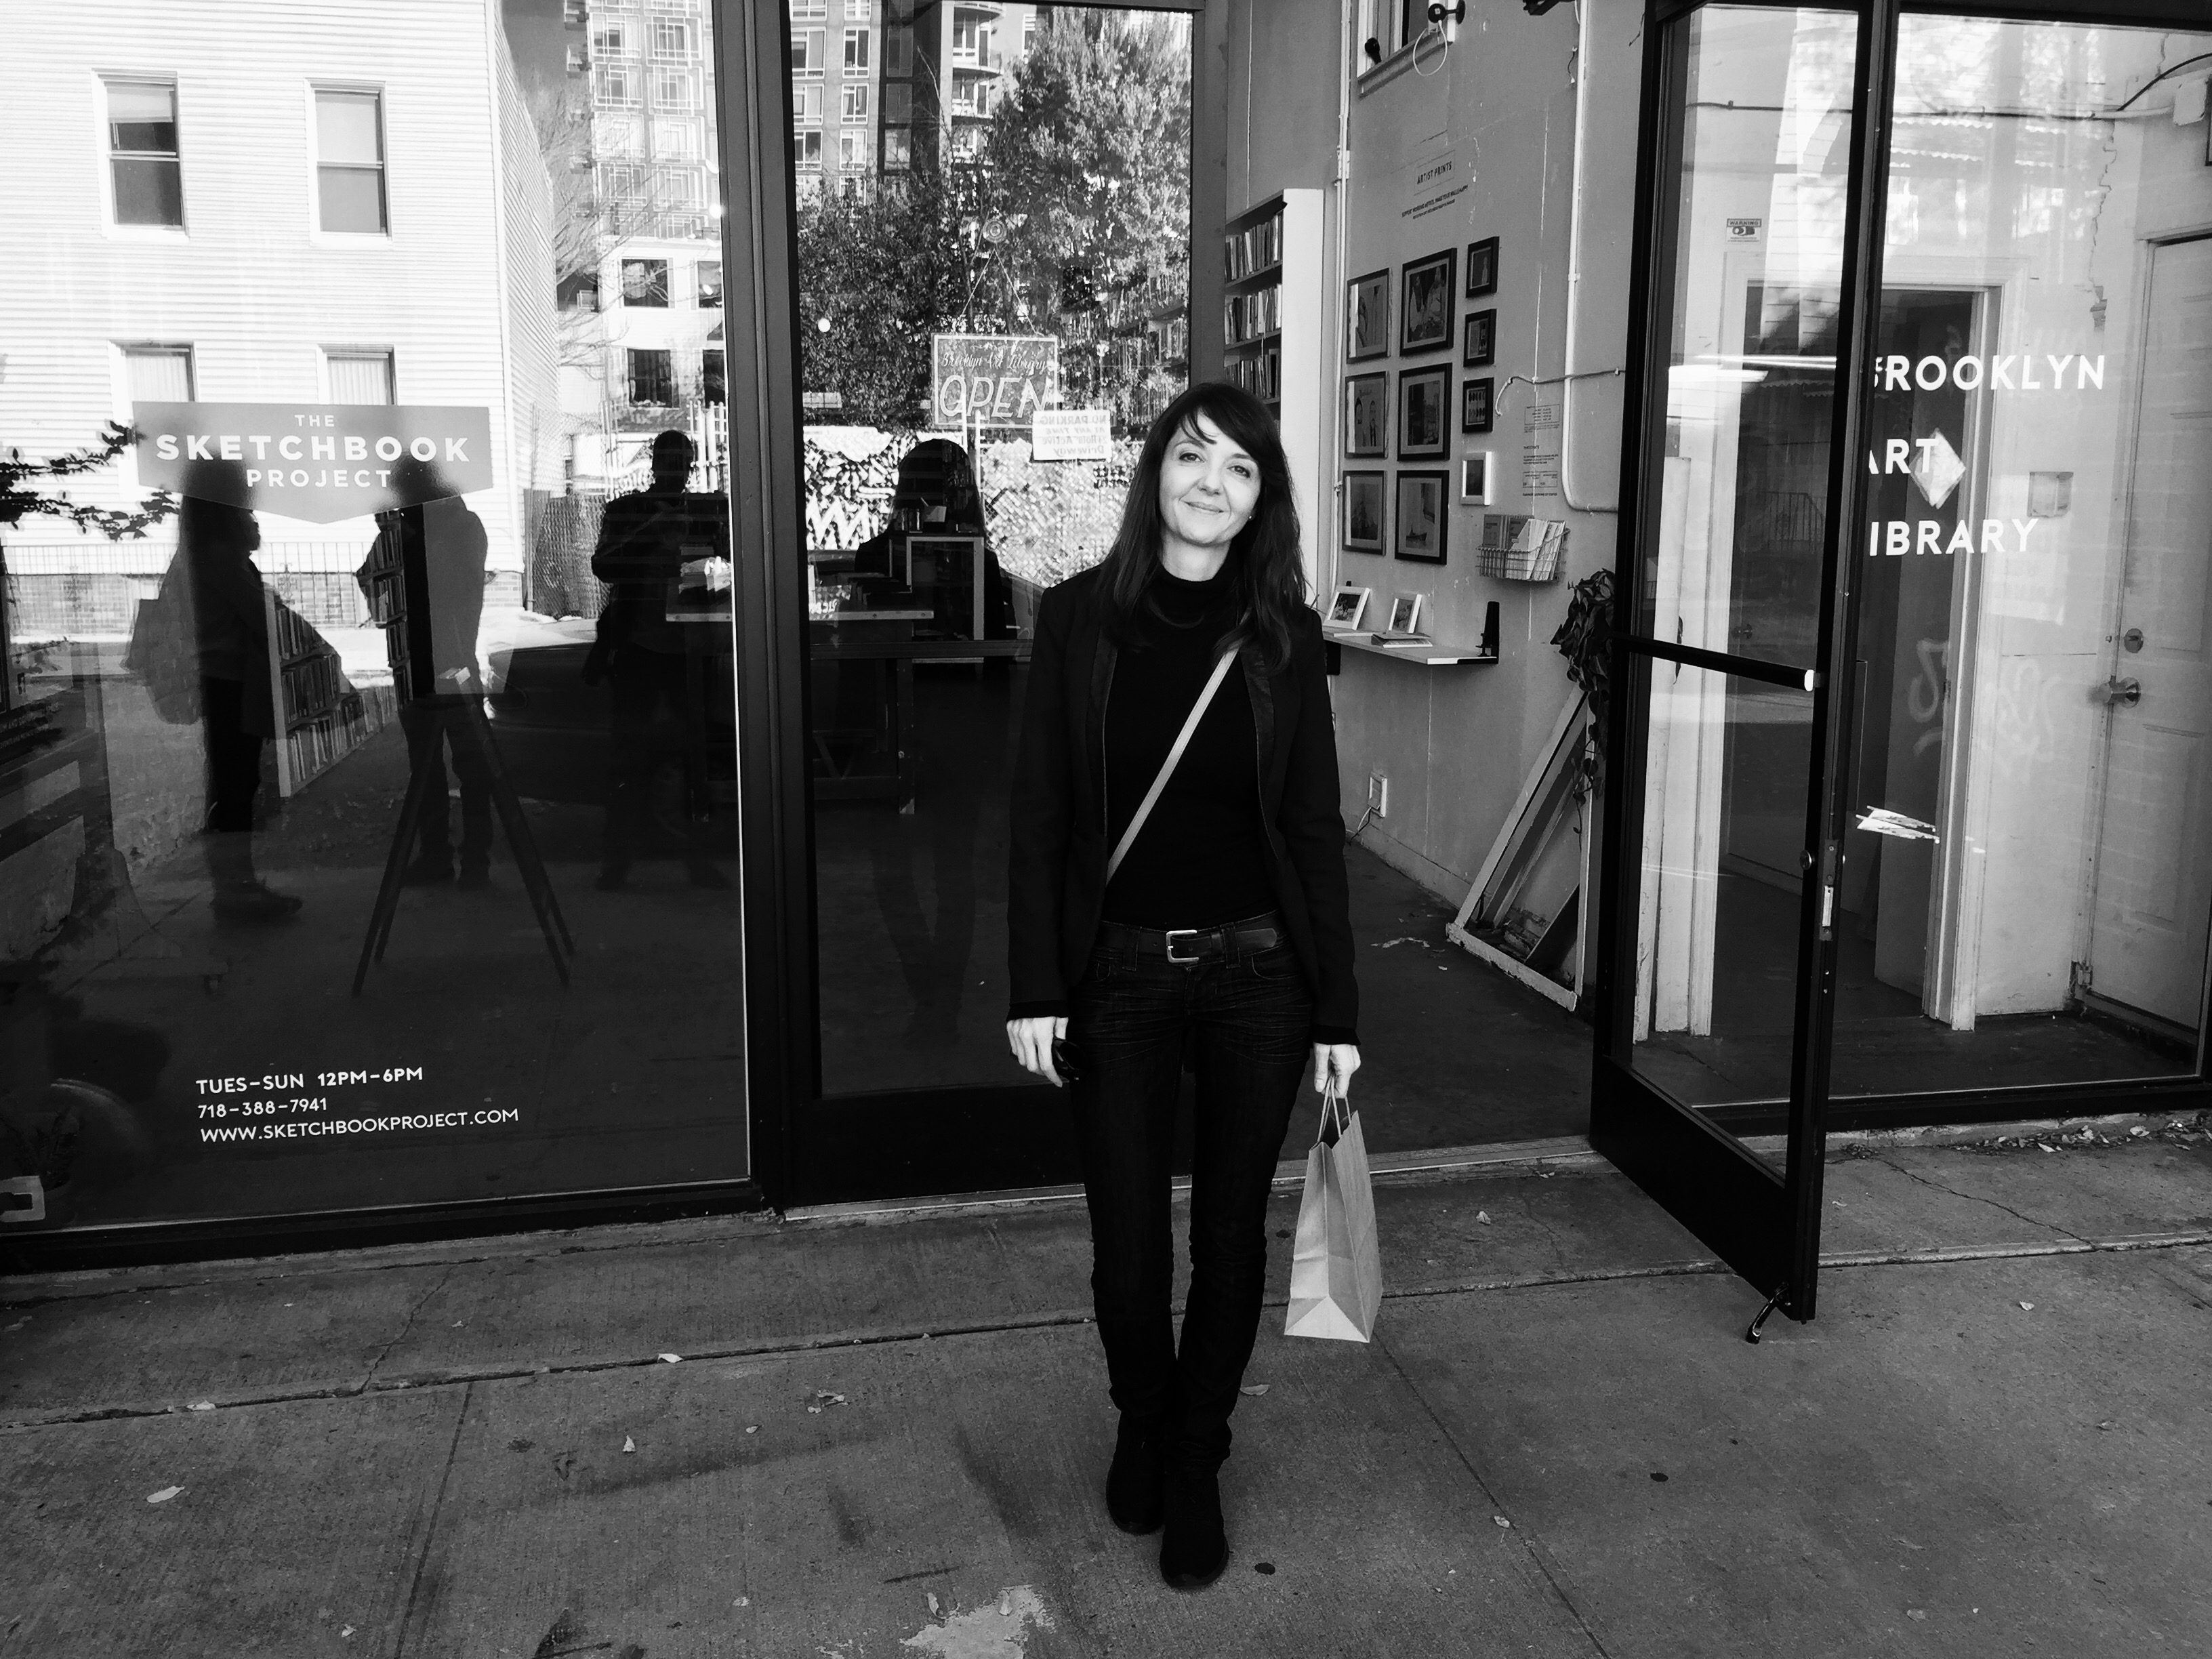 Black and white photo of artist Anja Studer standing in front of the library holding a shopping bag.